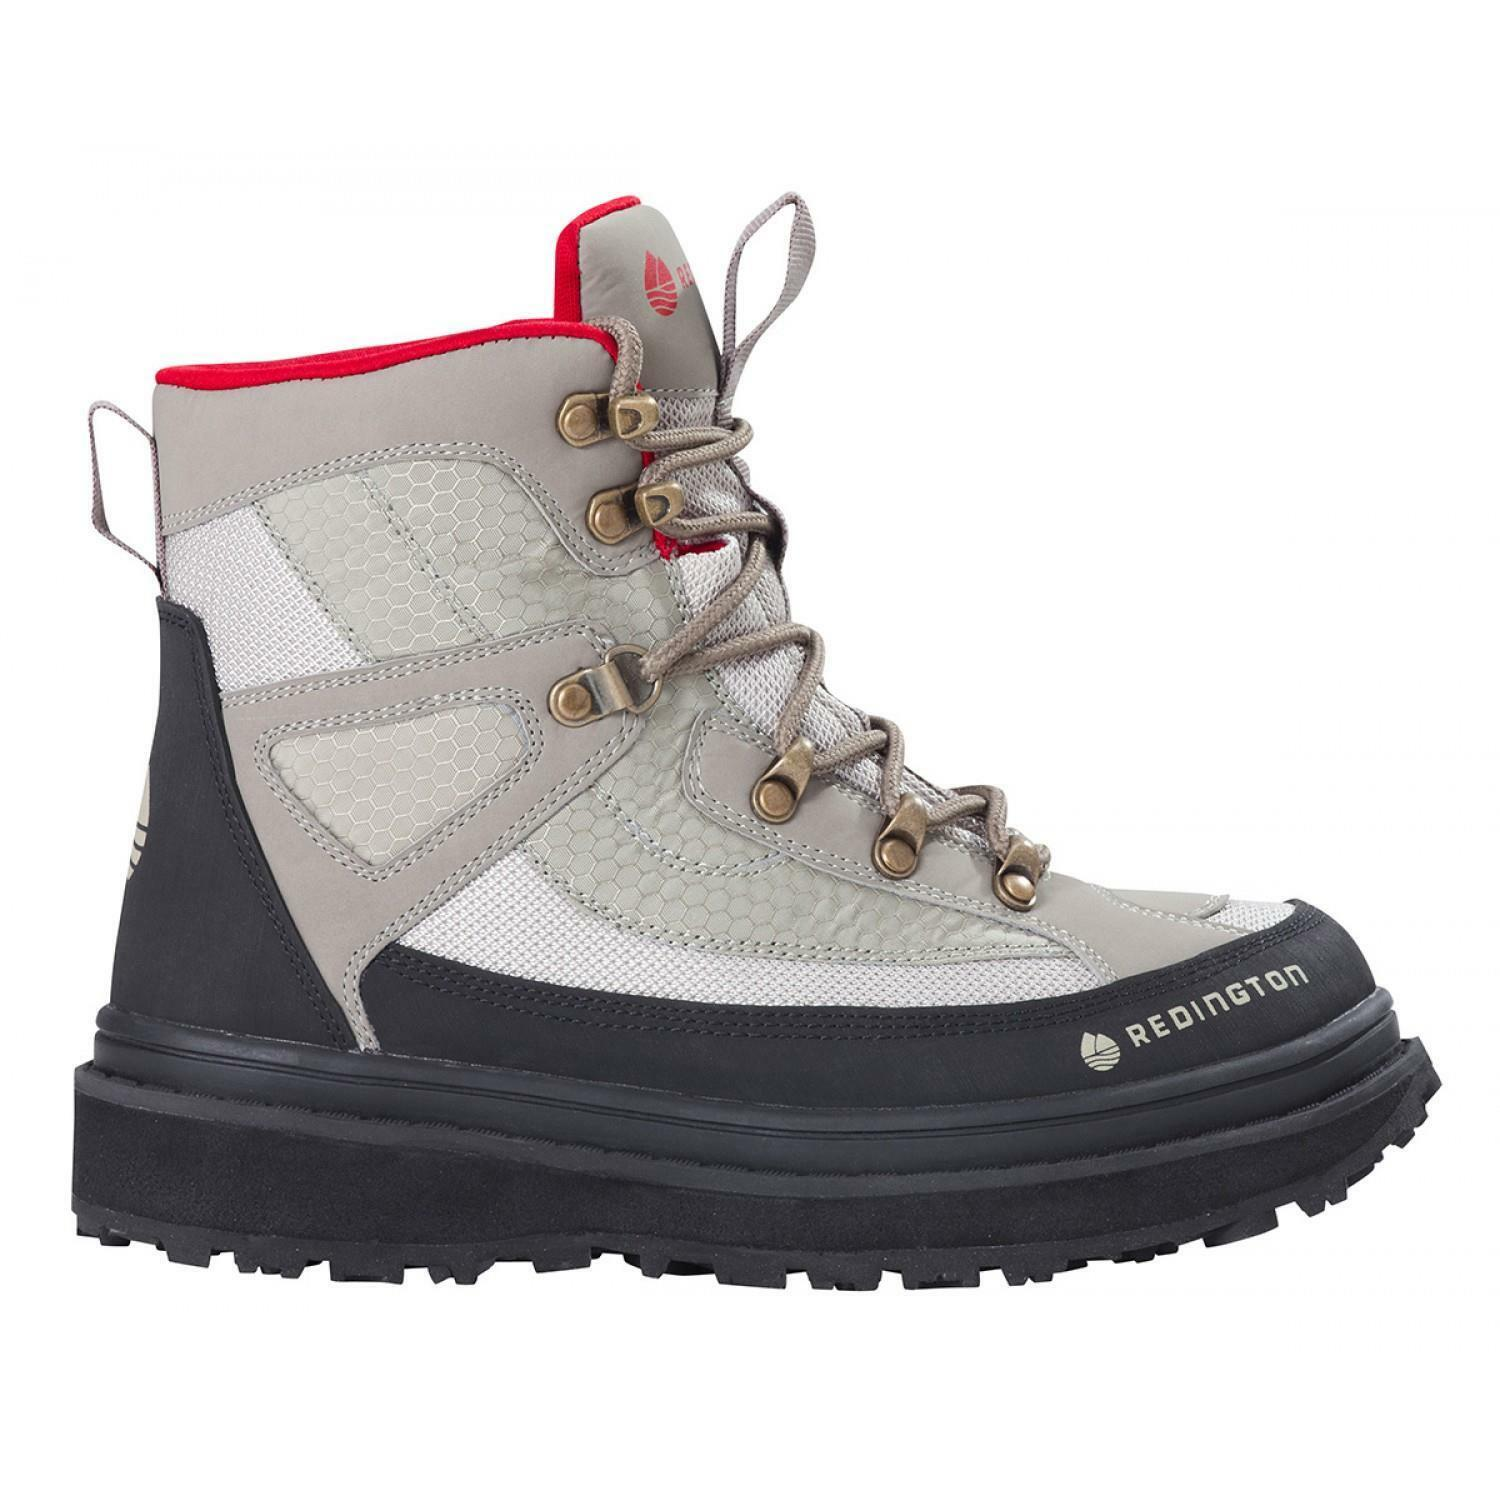 Redington Women's Willow River Boots, Felt or  Rubber, no tax and free shipping   factory outlet